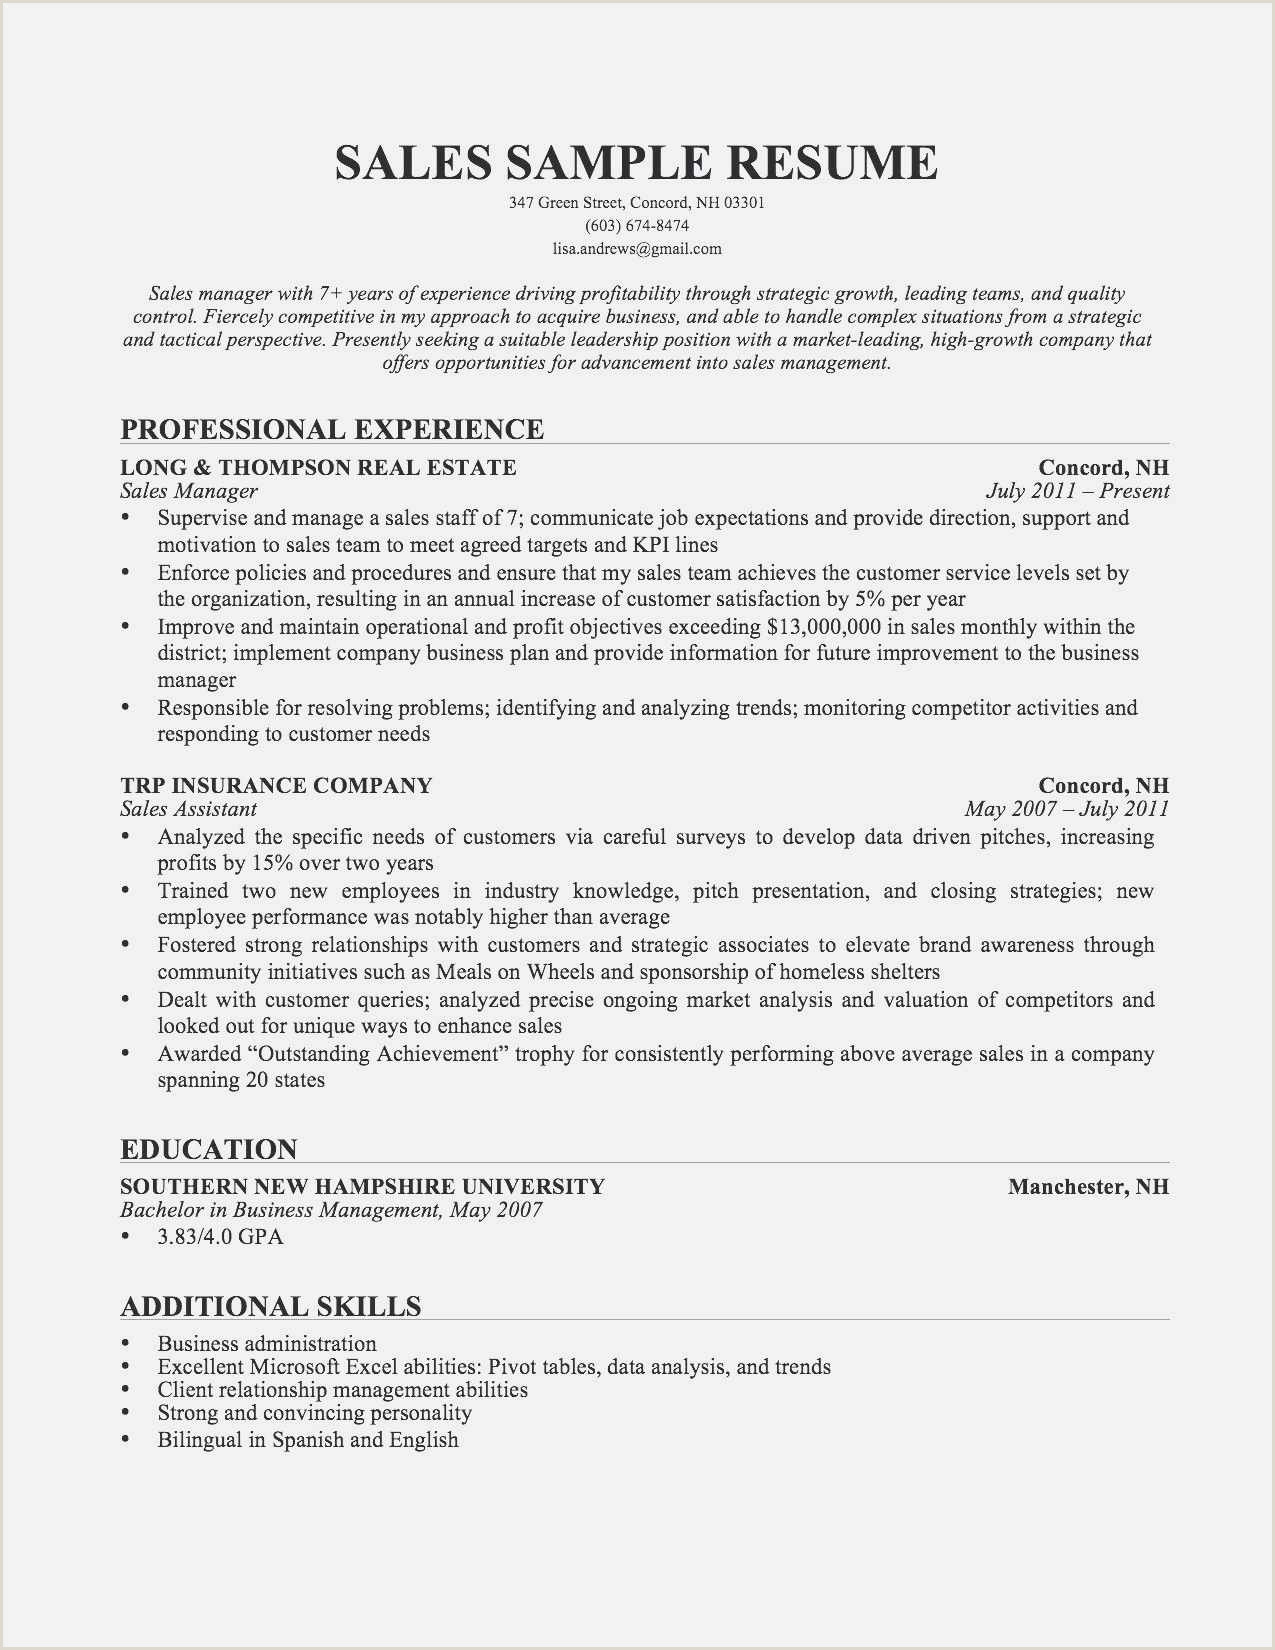 9 dunkin donuts manager resume